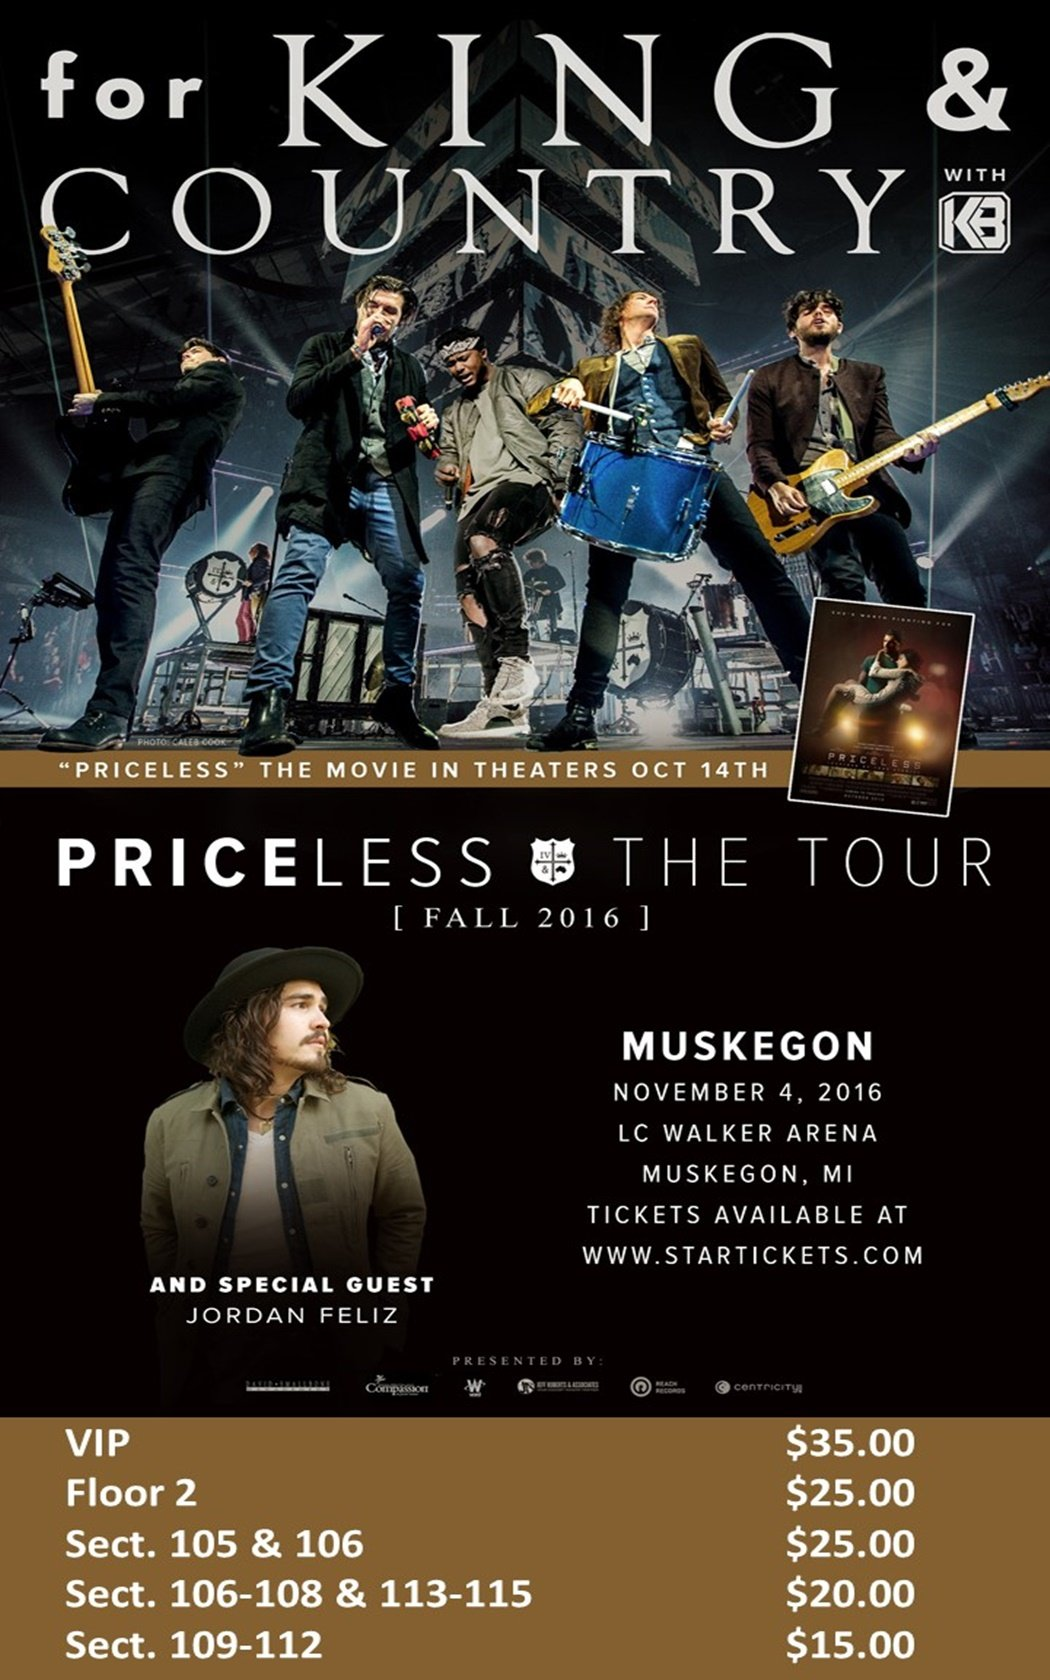 Nov 4 – For King & Country – L.C. Walker Arena & Event Center